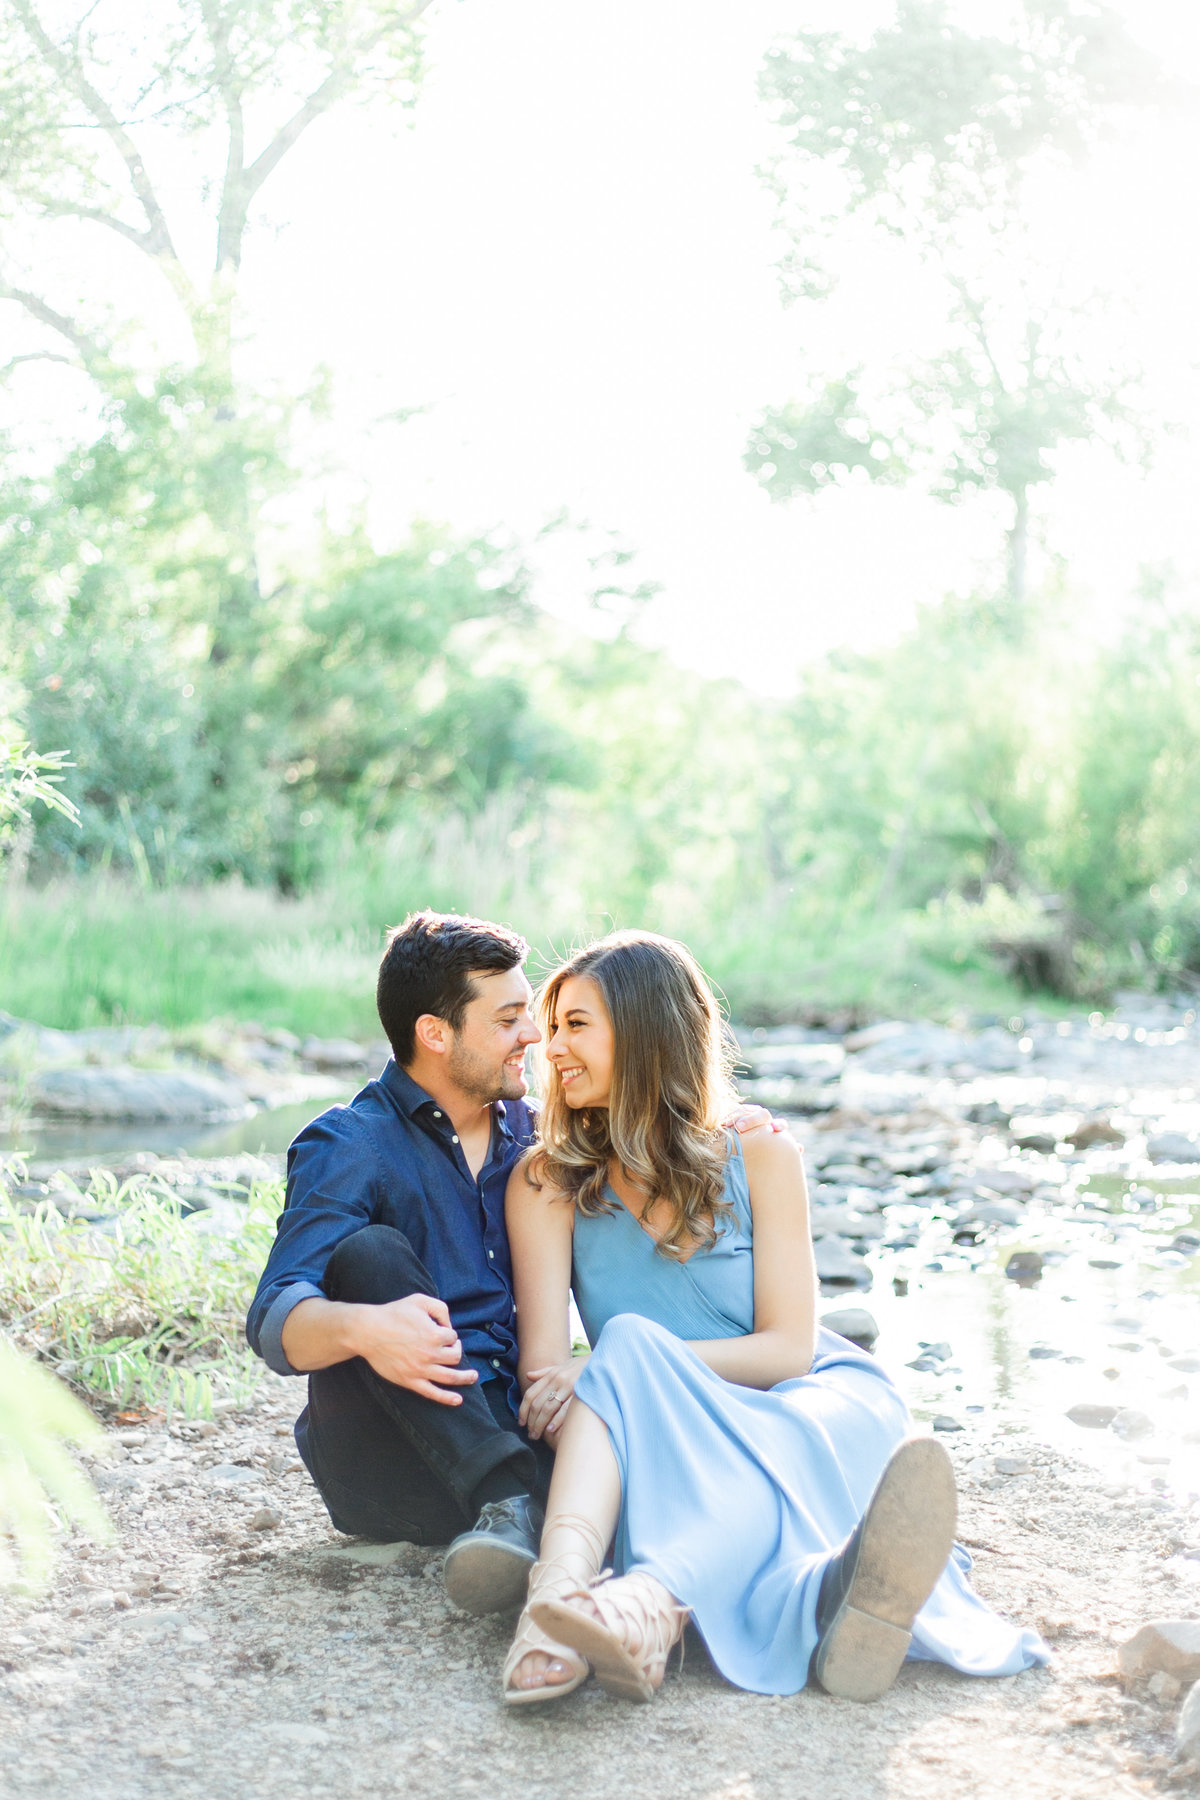 Karlie Colleen Photography - Arizona Desert Engagement - Brynne & Josh -74